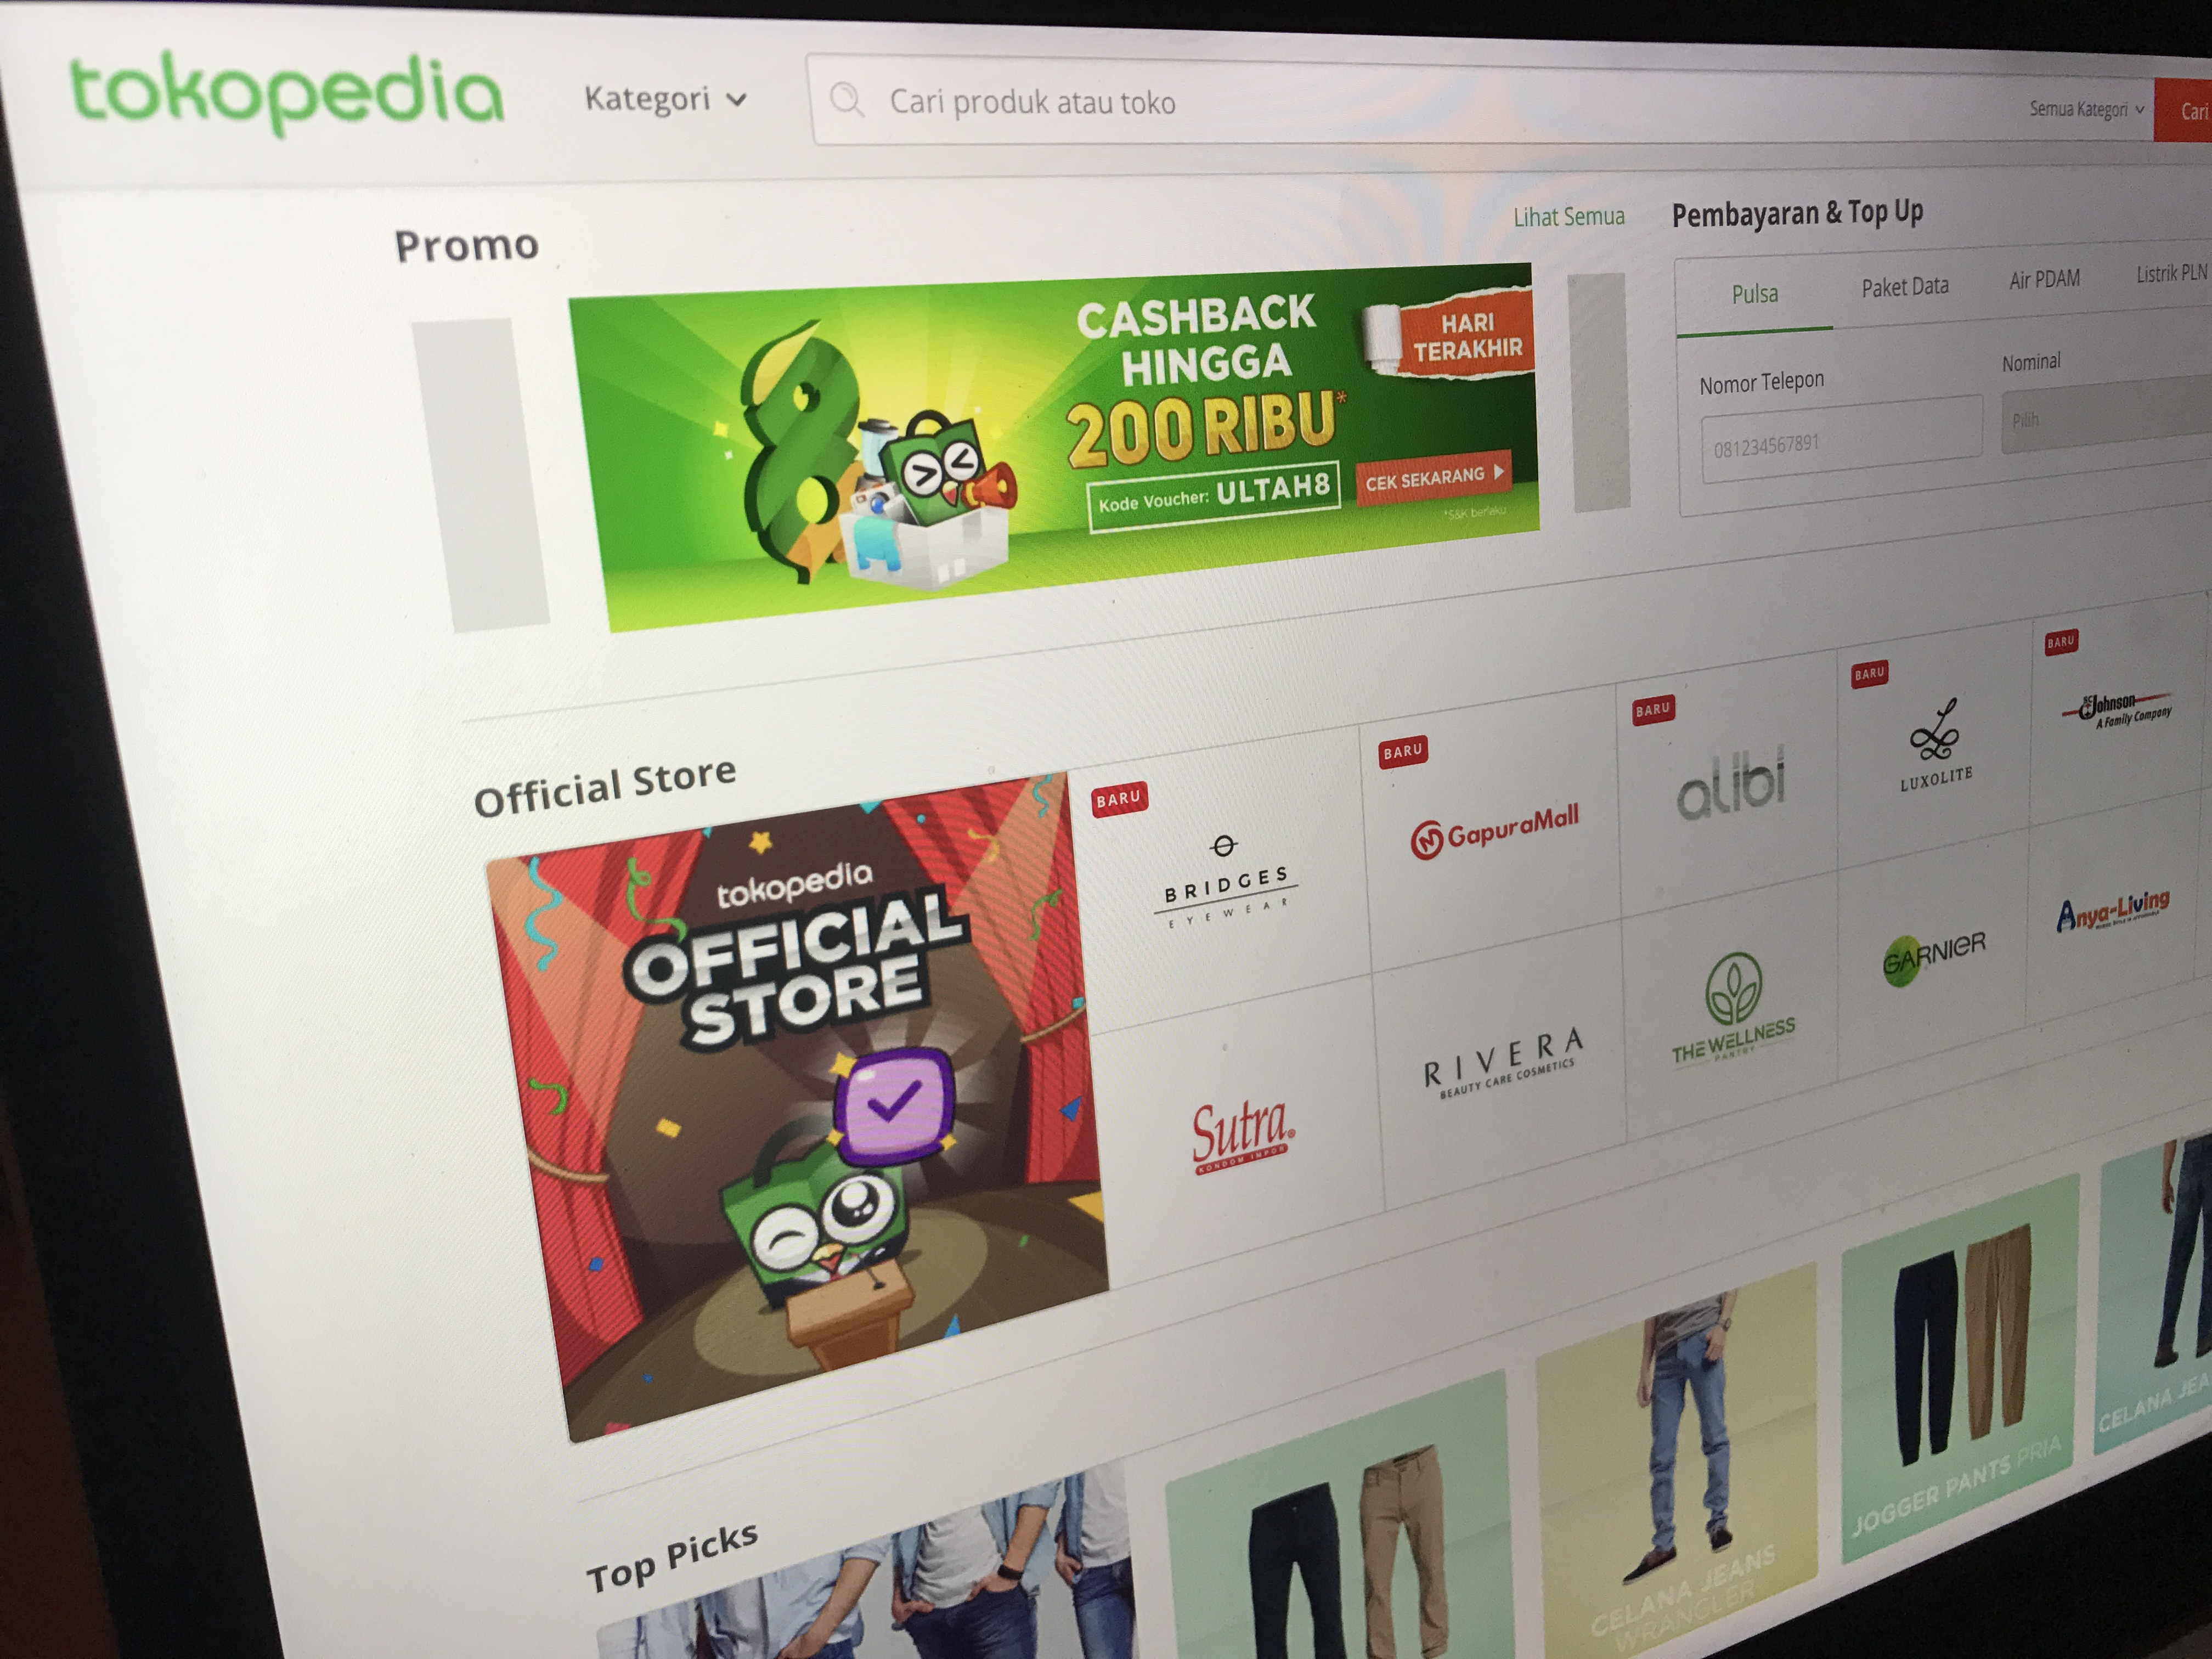 Indonesia e-commerce leader Tokopedia raises $1.1B from Alibaba and SoftBank's Vision Fund photo 17 08 2017 7 52 37 pm